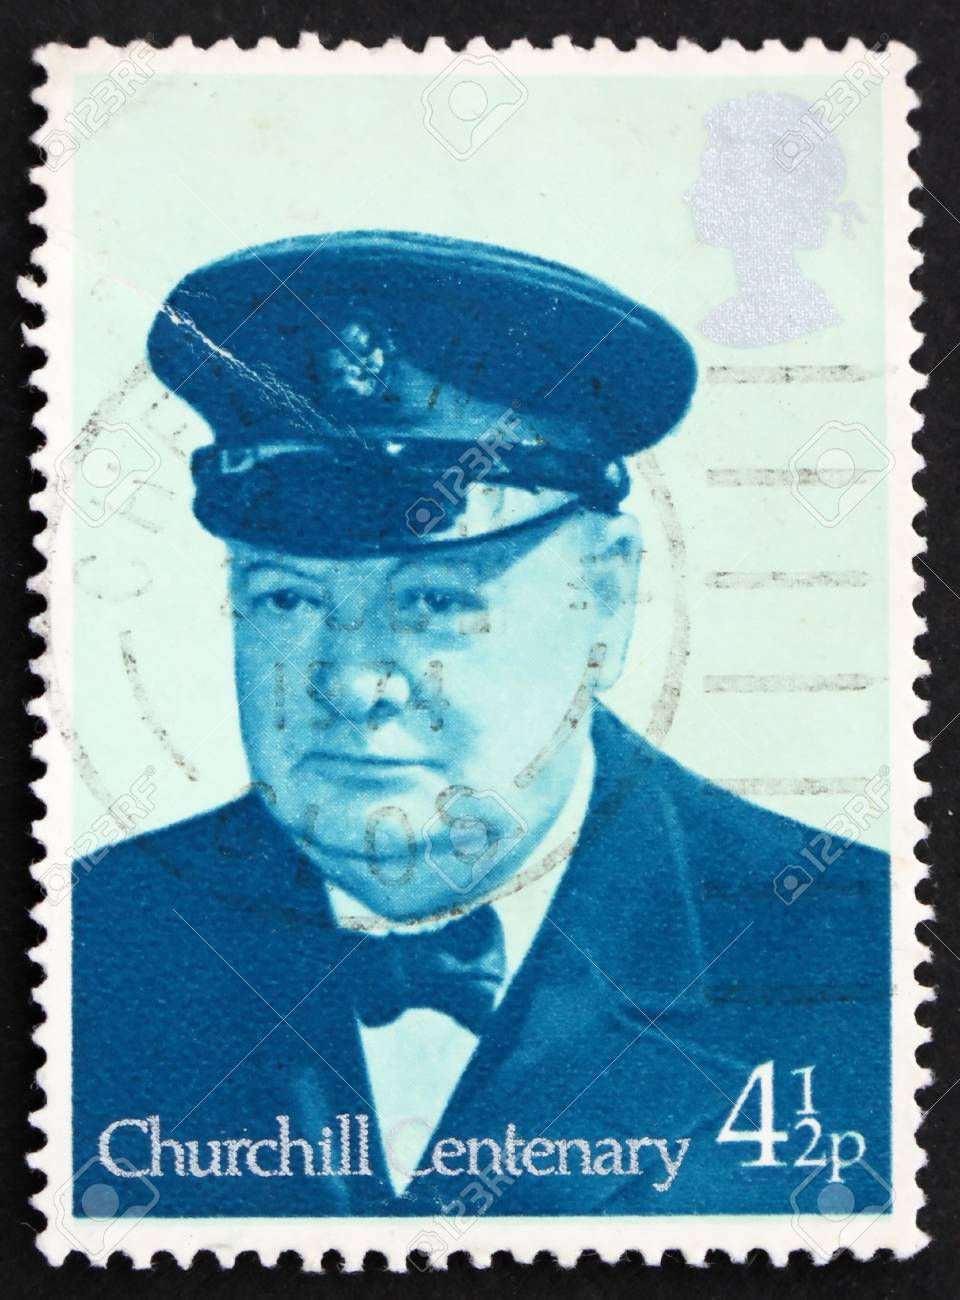 GREAT BRITAIN � CIRCA 1974: a stamp printed in the Great Britain shows Sir Winston Spencer Churchill British statesman, circa 1974 Stock Photo - 10205161